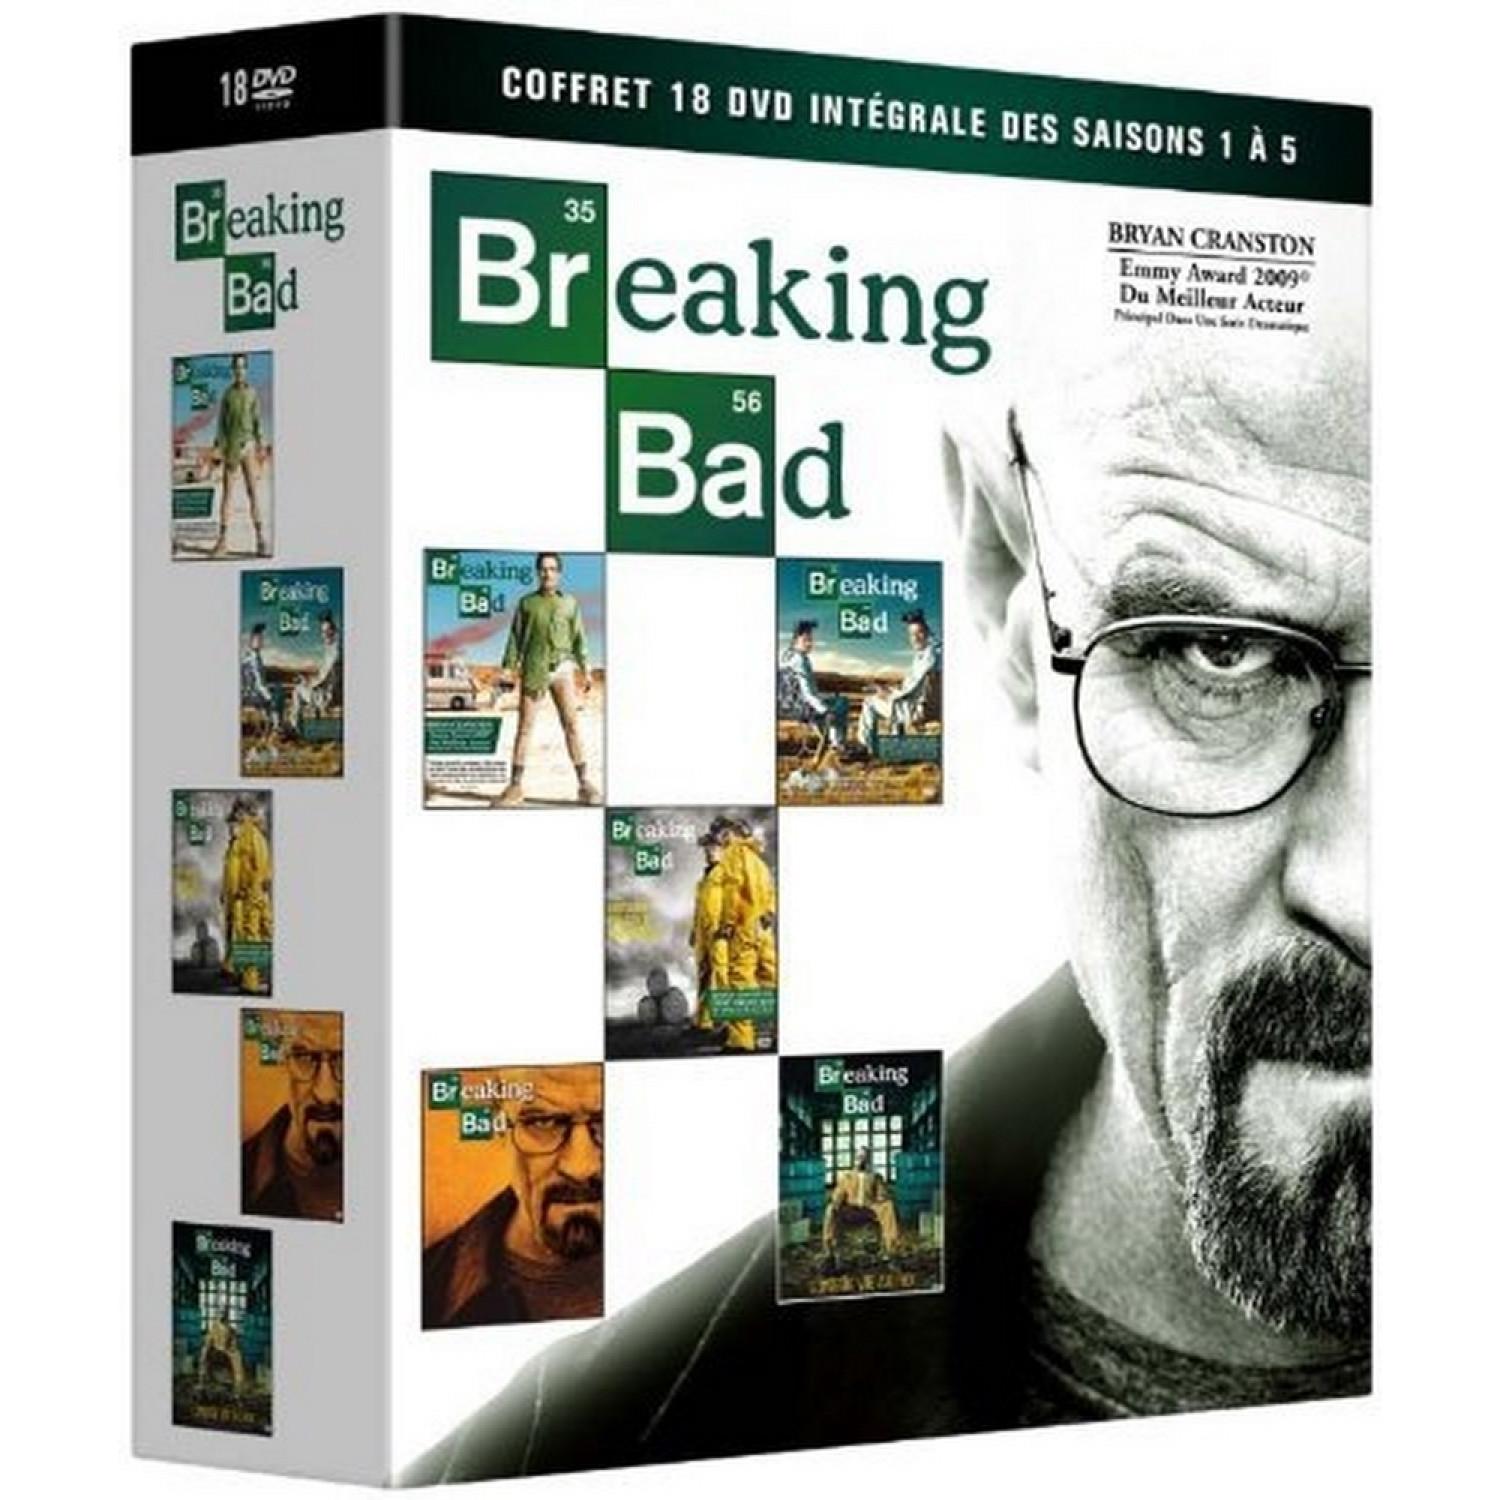 Breaking Bad - Coffret 18 Dvd Integrale Des Saisons 1 A 5